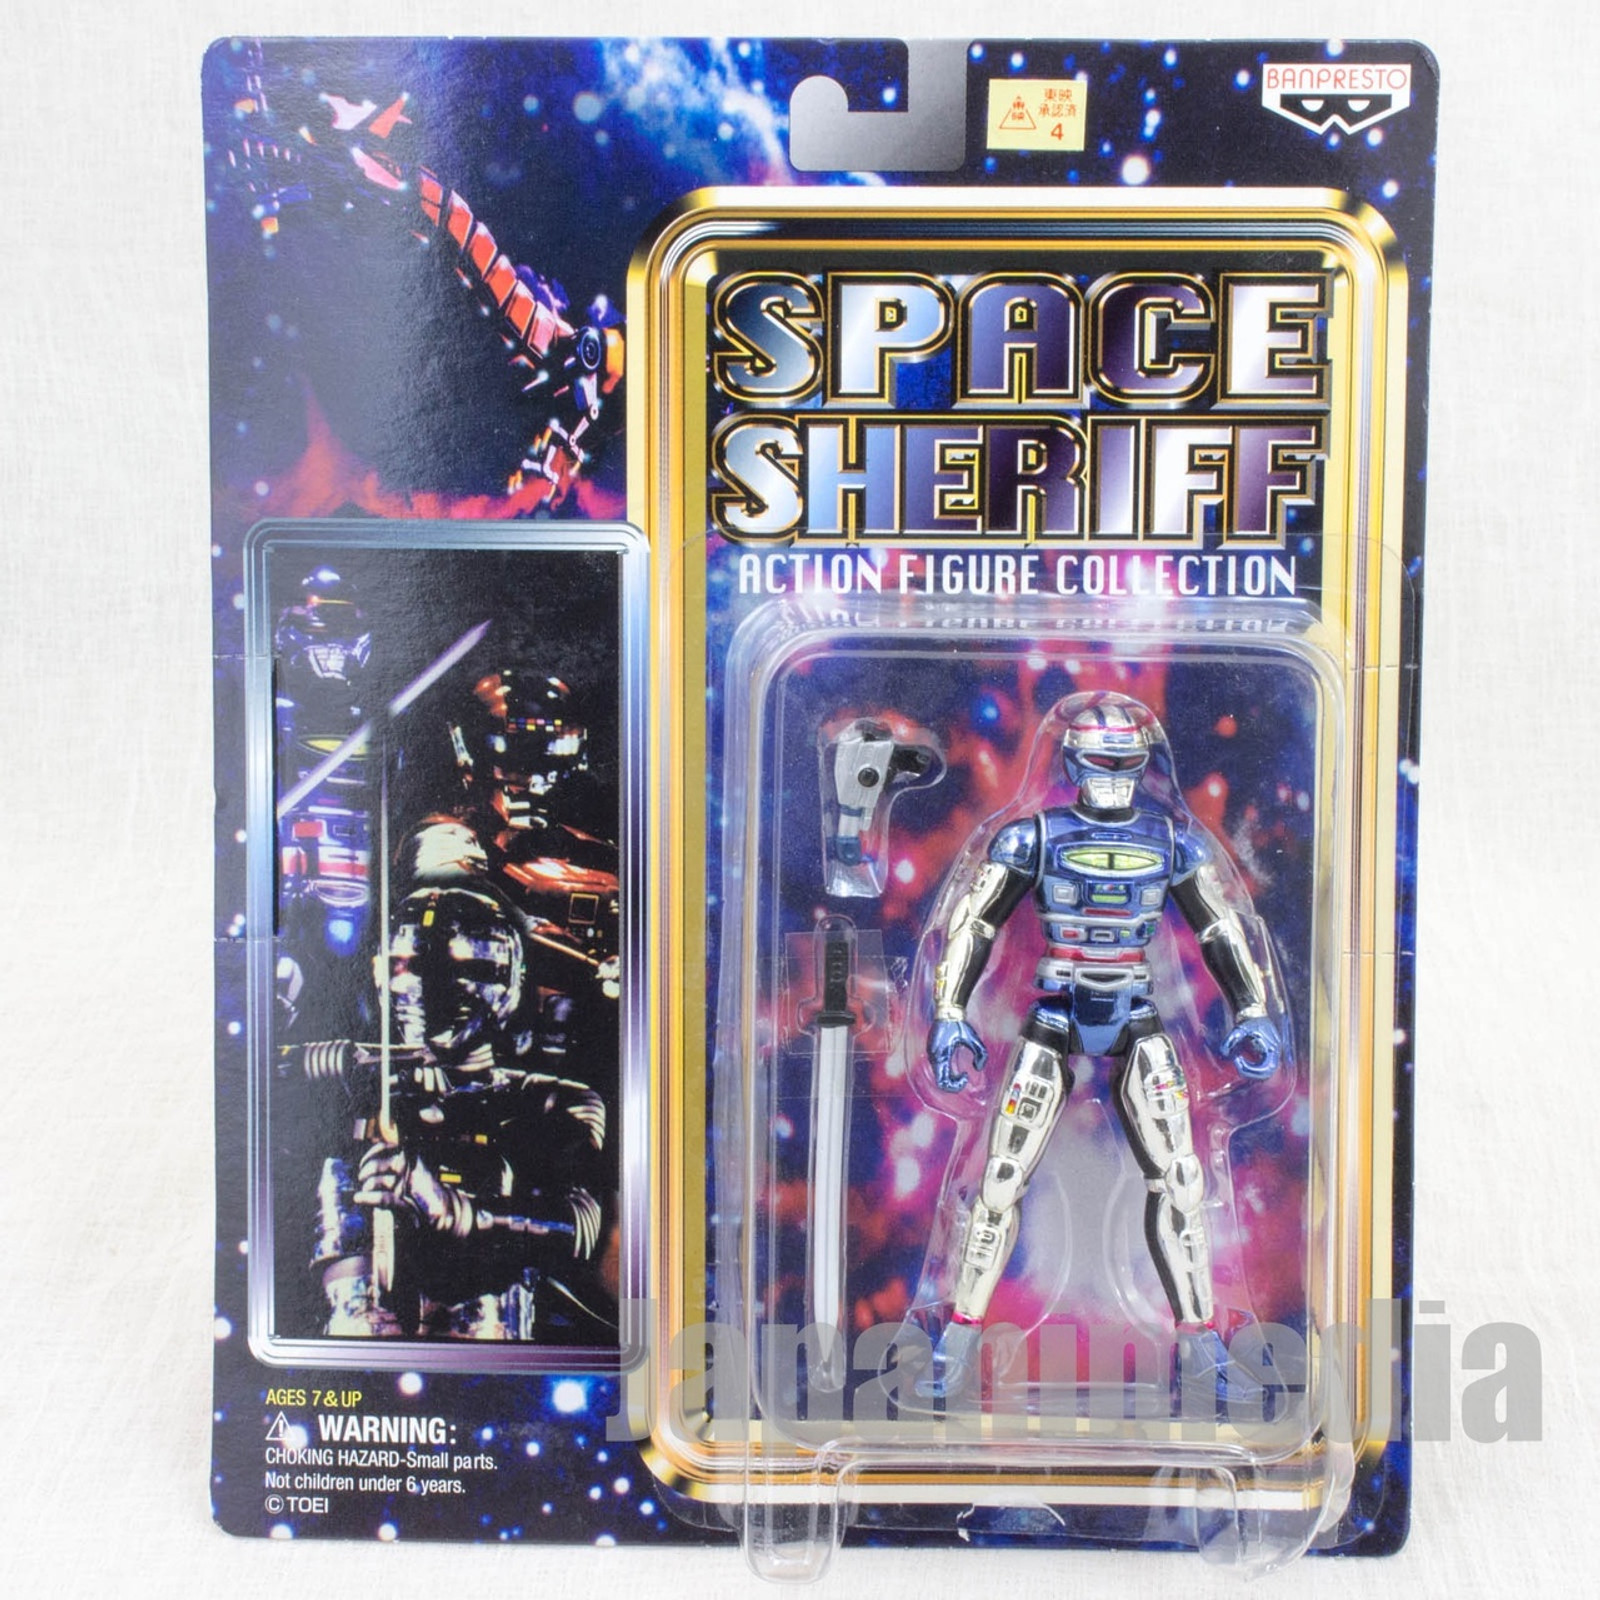 Space Sheriff Shaider Toei Hero Action Figure Collection JAPAN ANIME TOKUSATSU